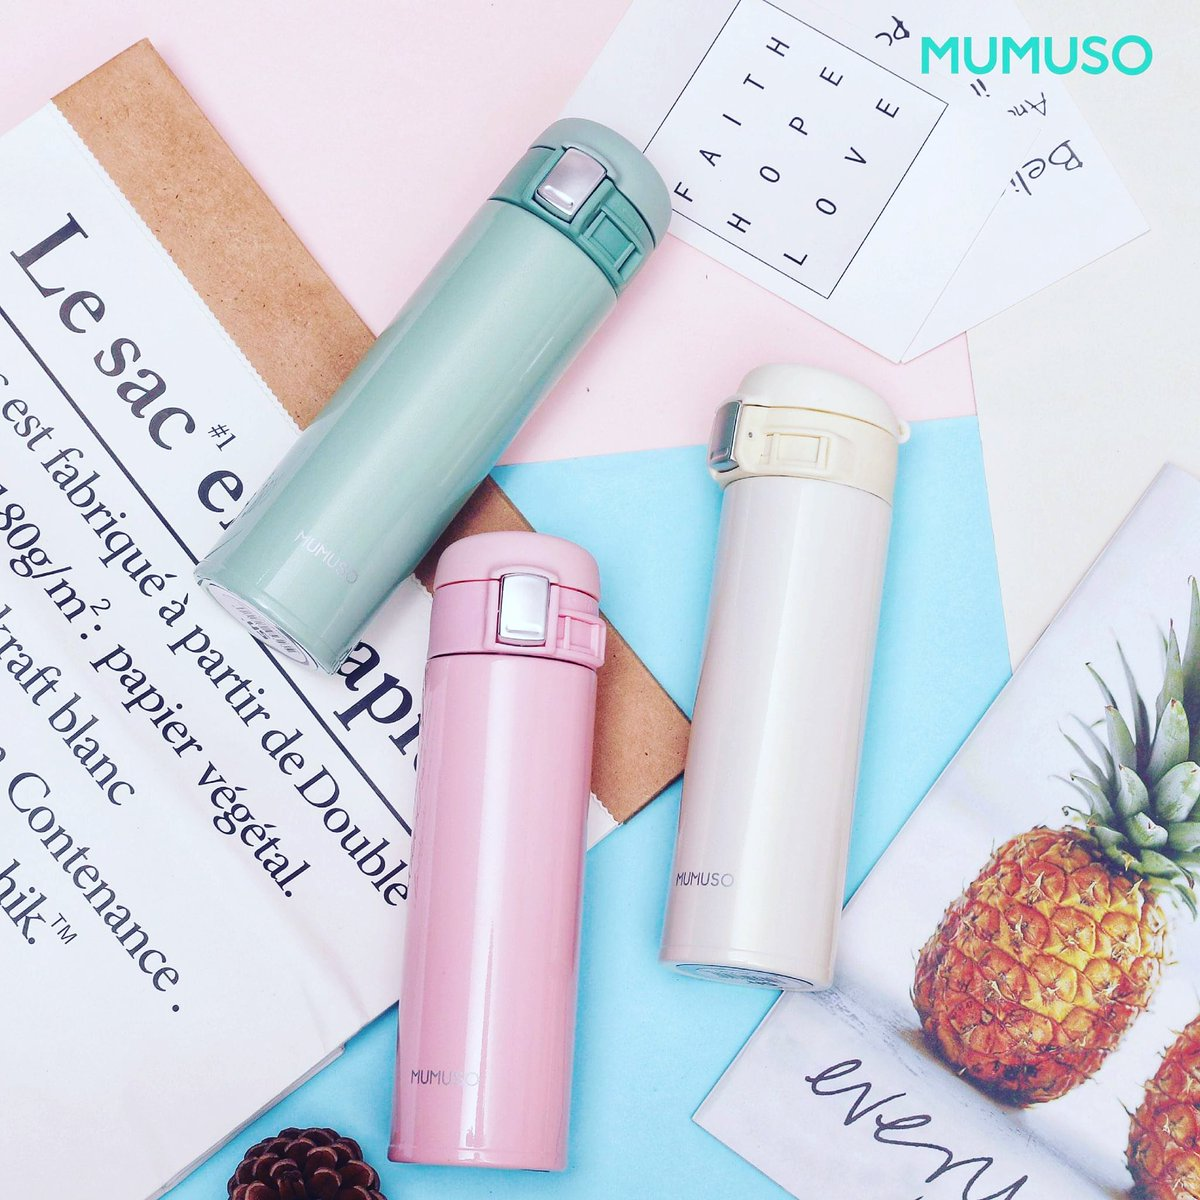 Always bring your own bottle to help reduce plastic use. Have a great day! 😉  #Mumuso